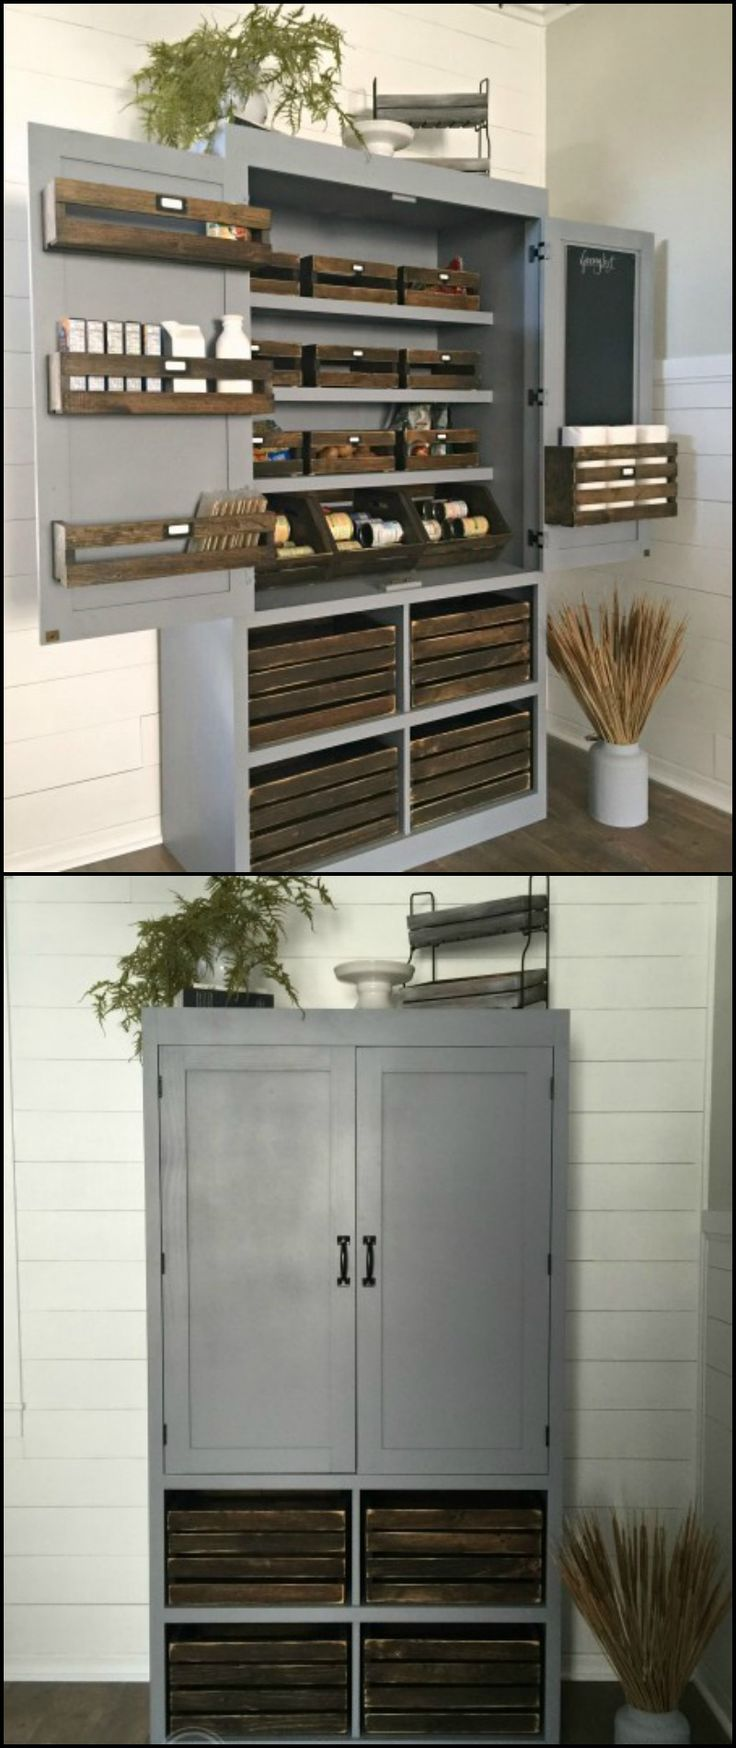 Diy Small Kitchens best 25+ small kitchen diy ideas on pinterest | diy kitchen